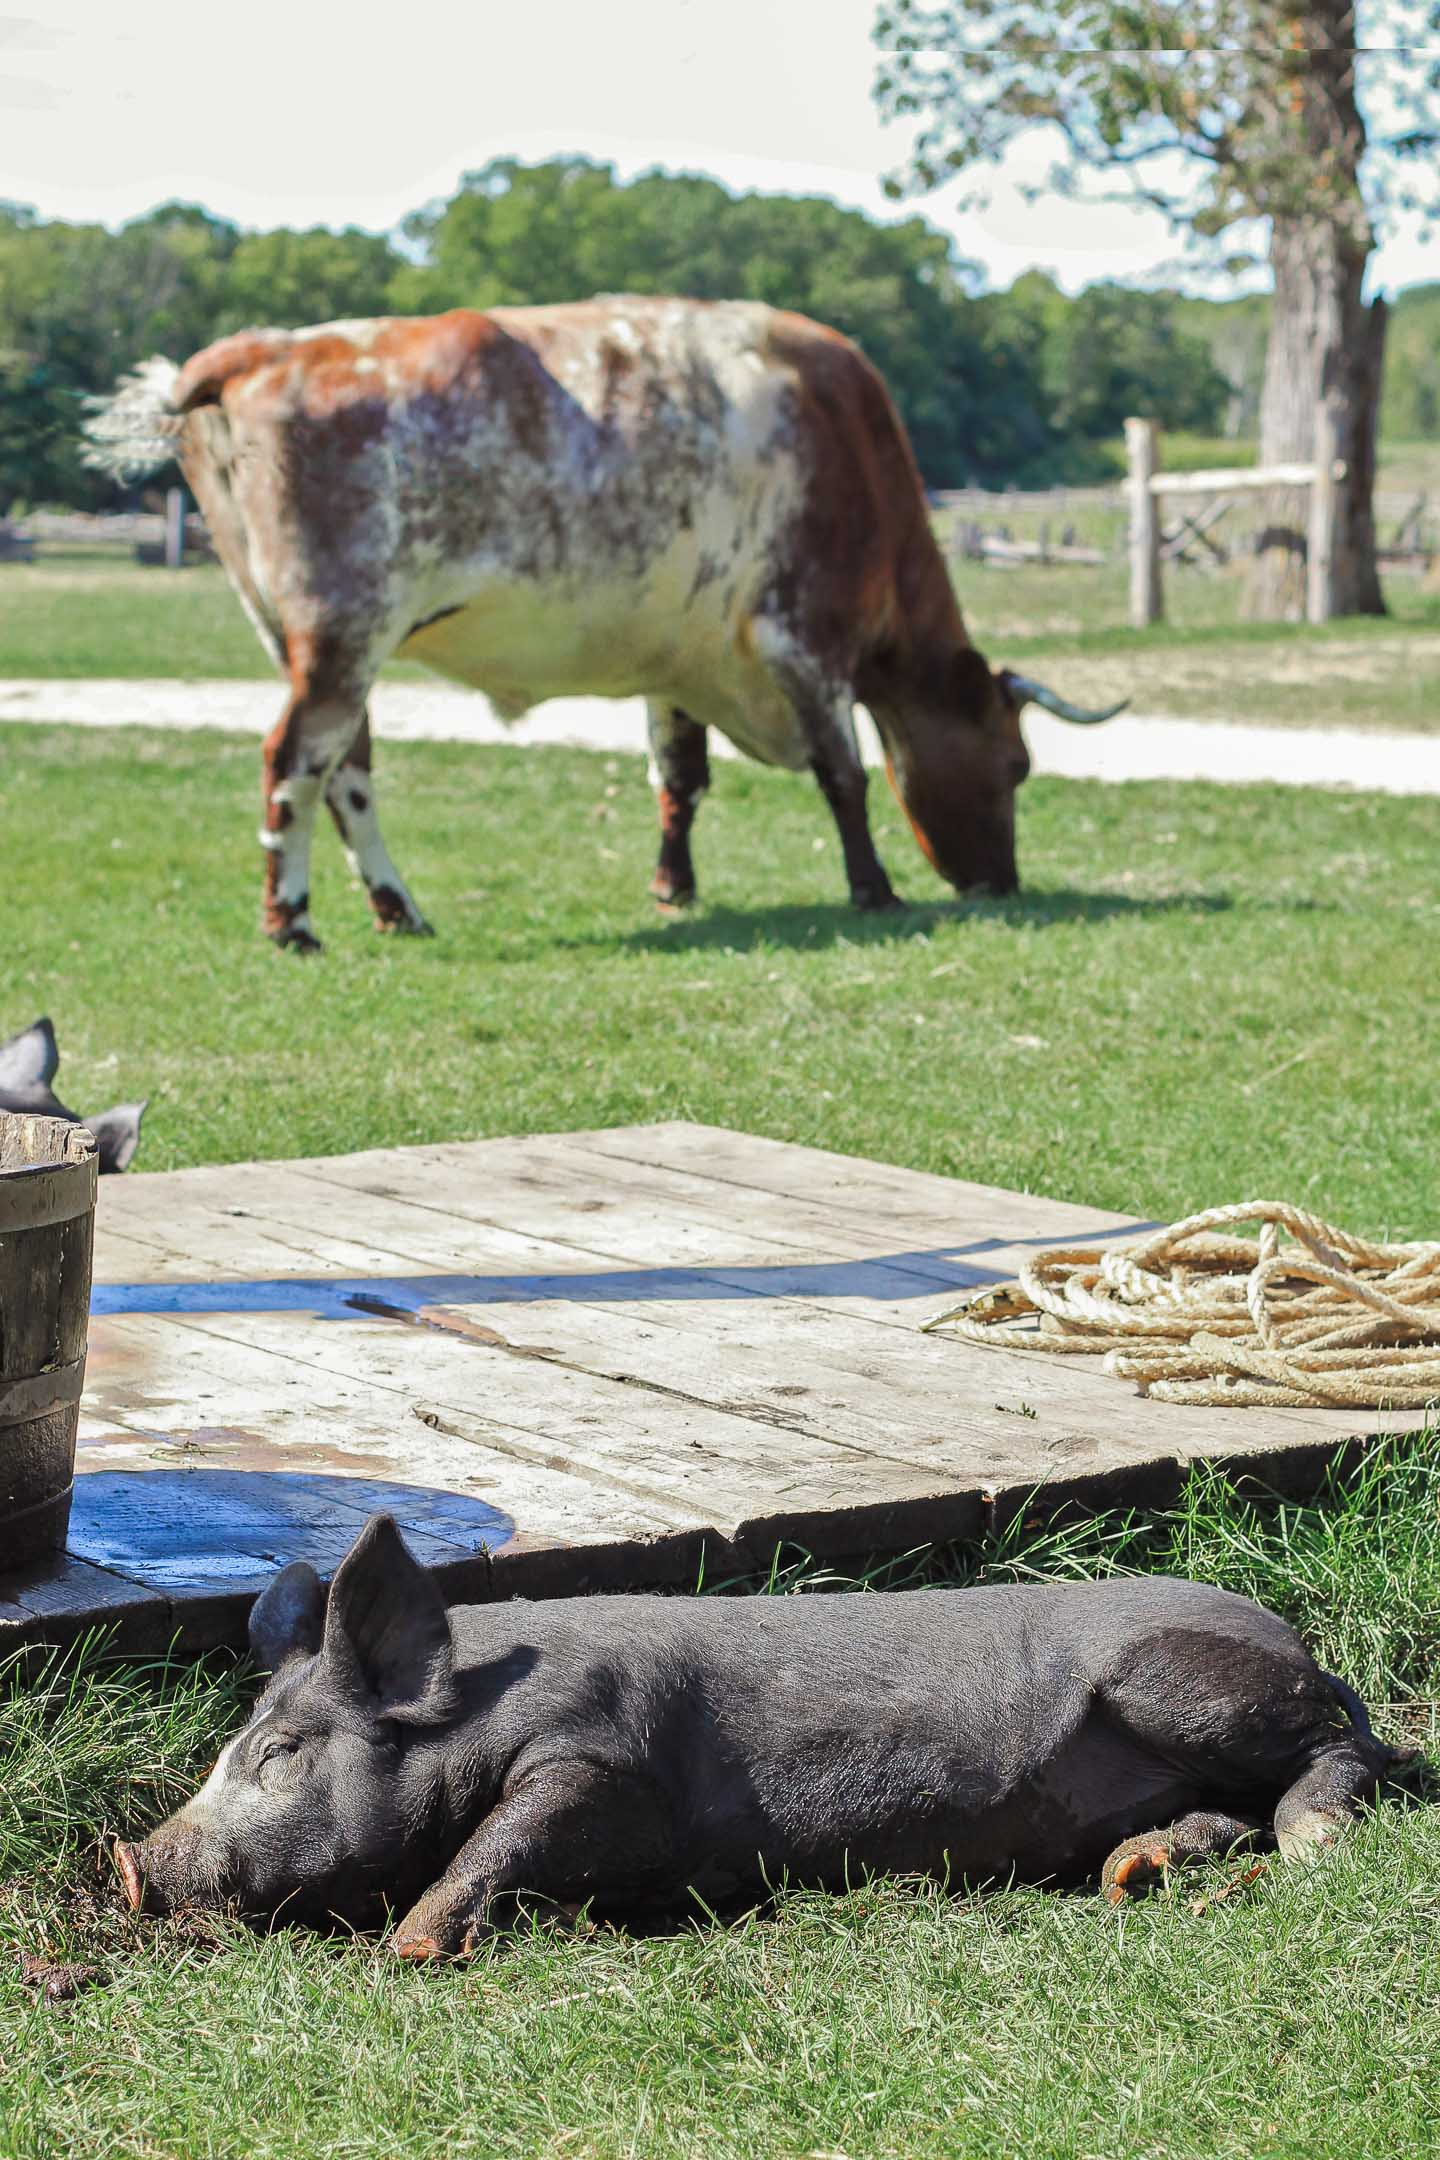 A pig in a hole and an ox eating grass.